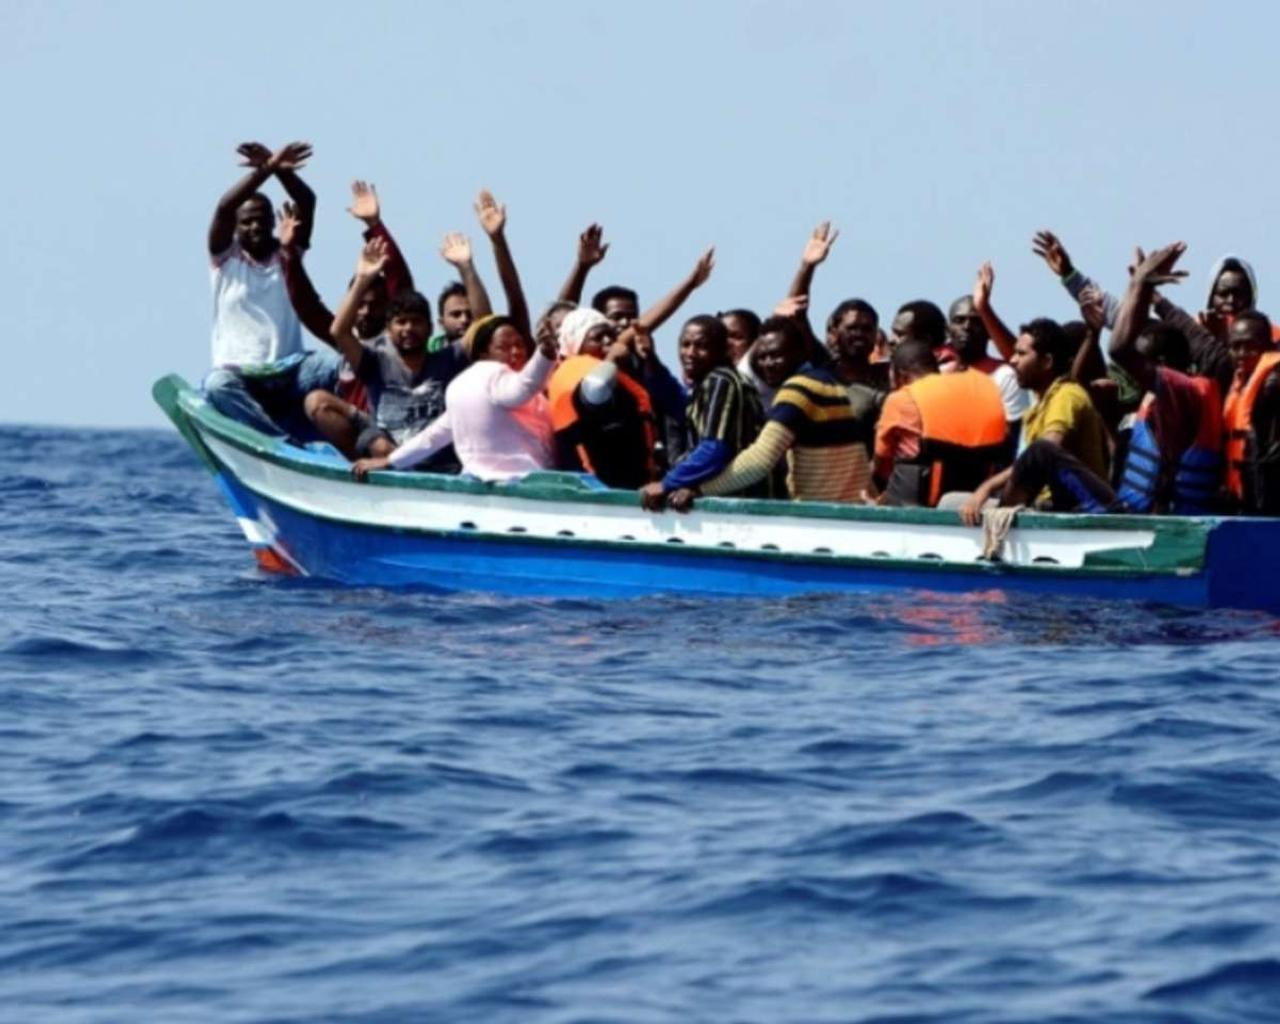 A shipwreck of migrants fleeing the war in Yemen left 42 dead in Djibouti: 16 were children.